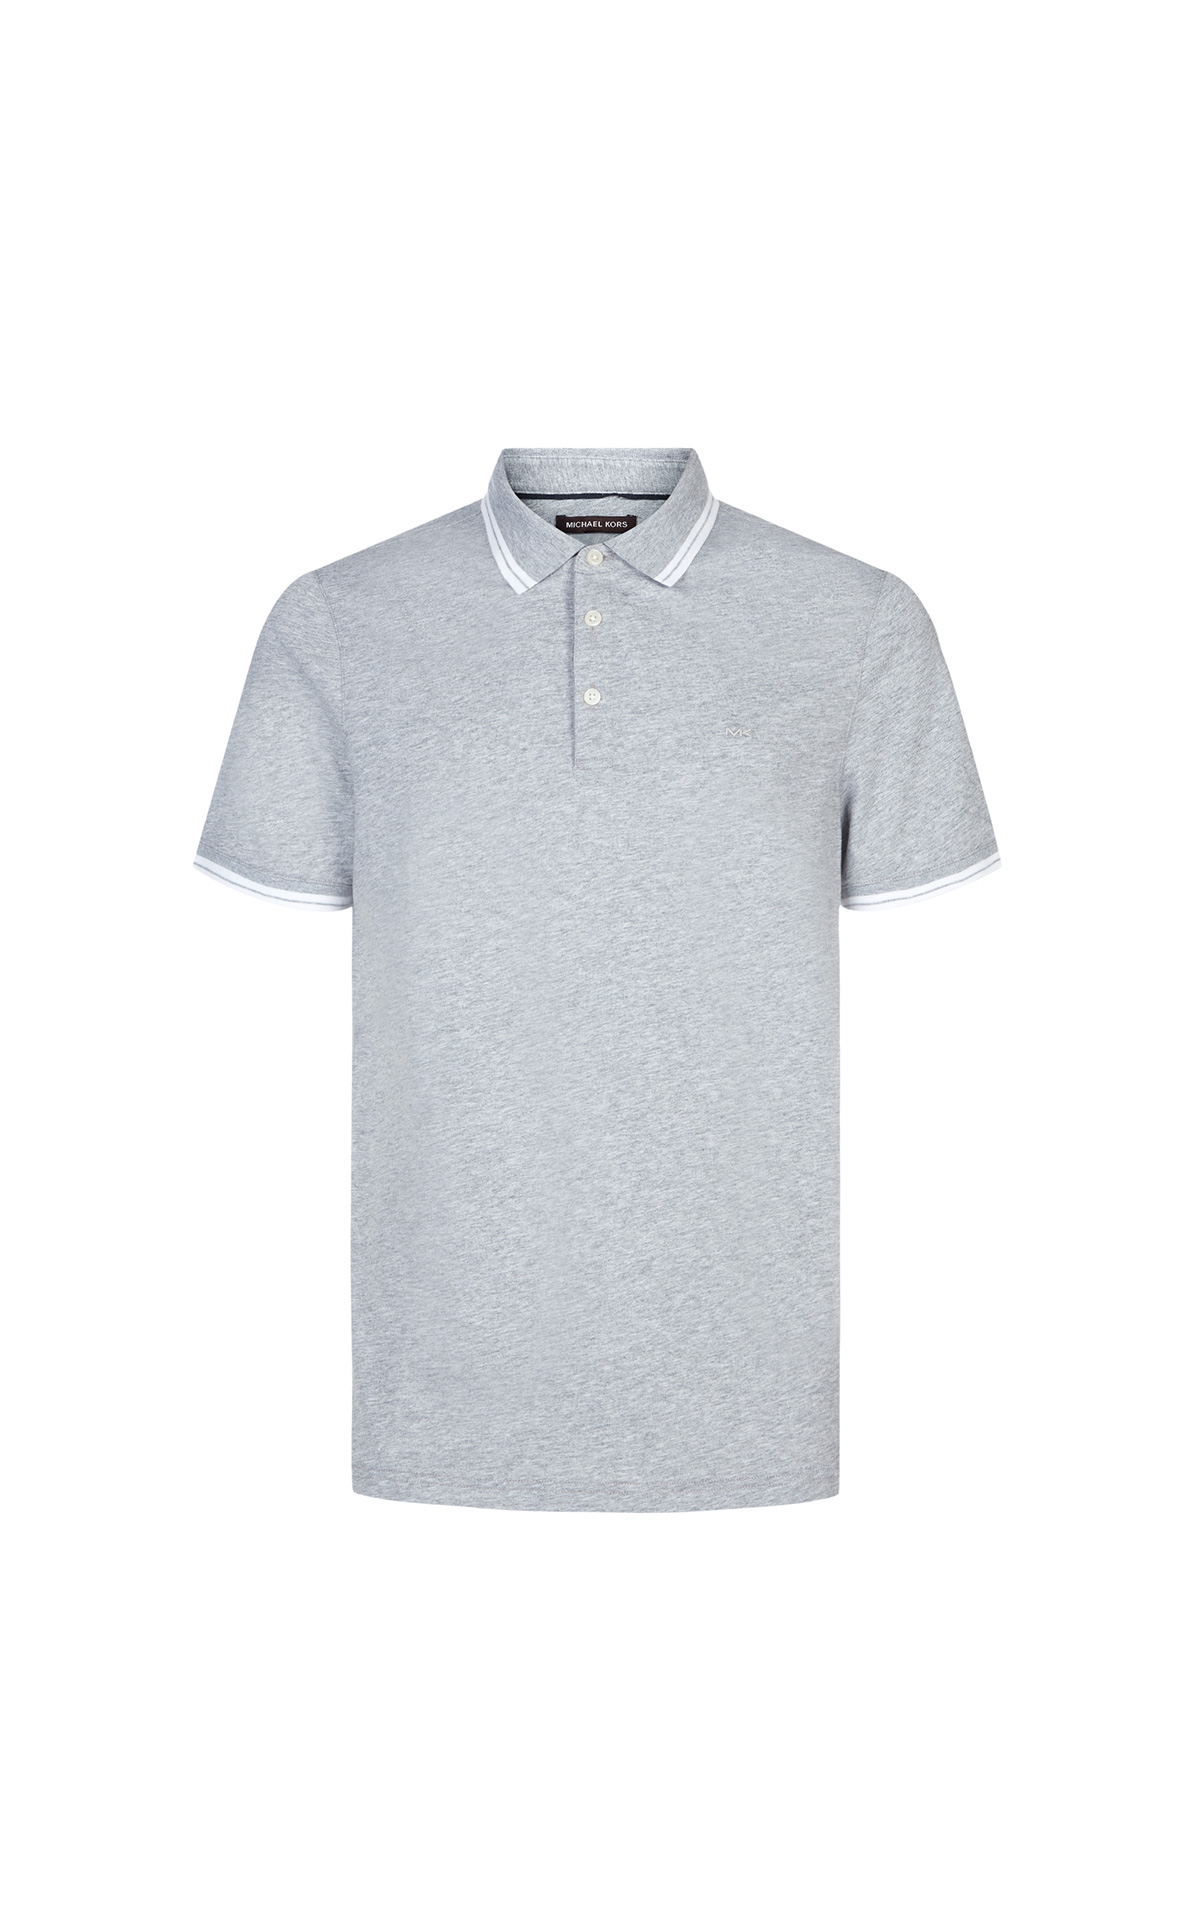 Michael Kors Greenwich Polo in heather grey at The Bicester Village Shopping Collection